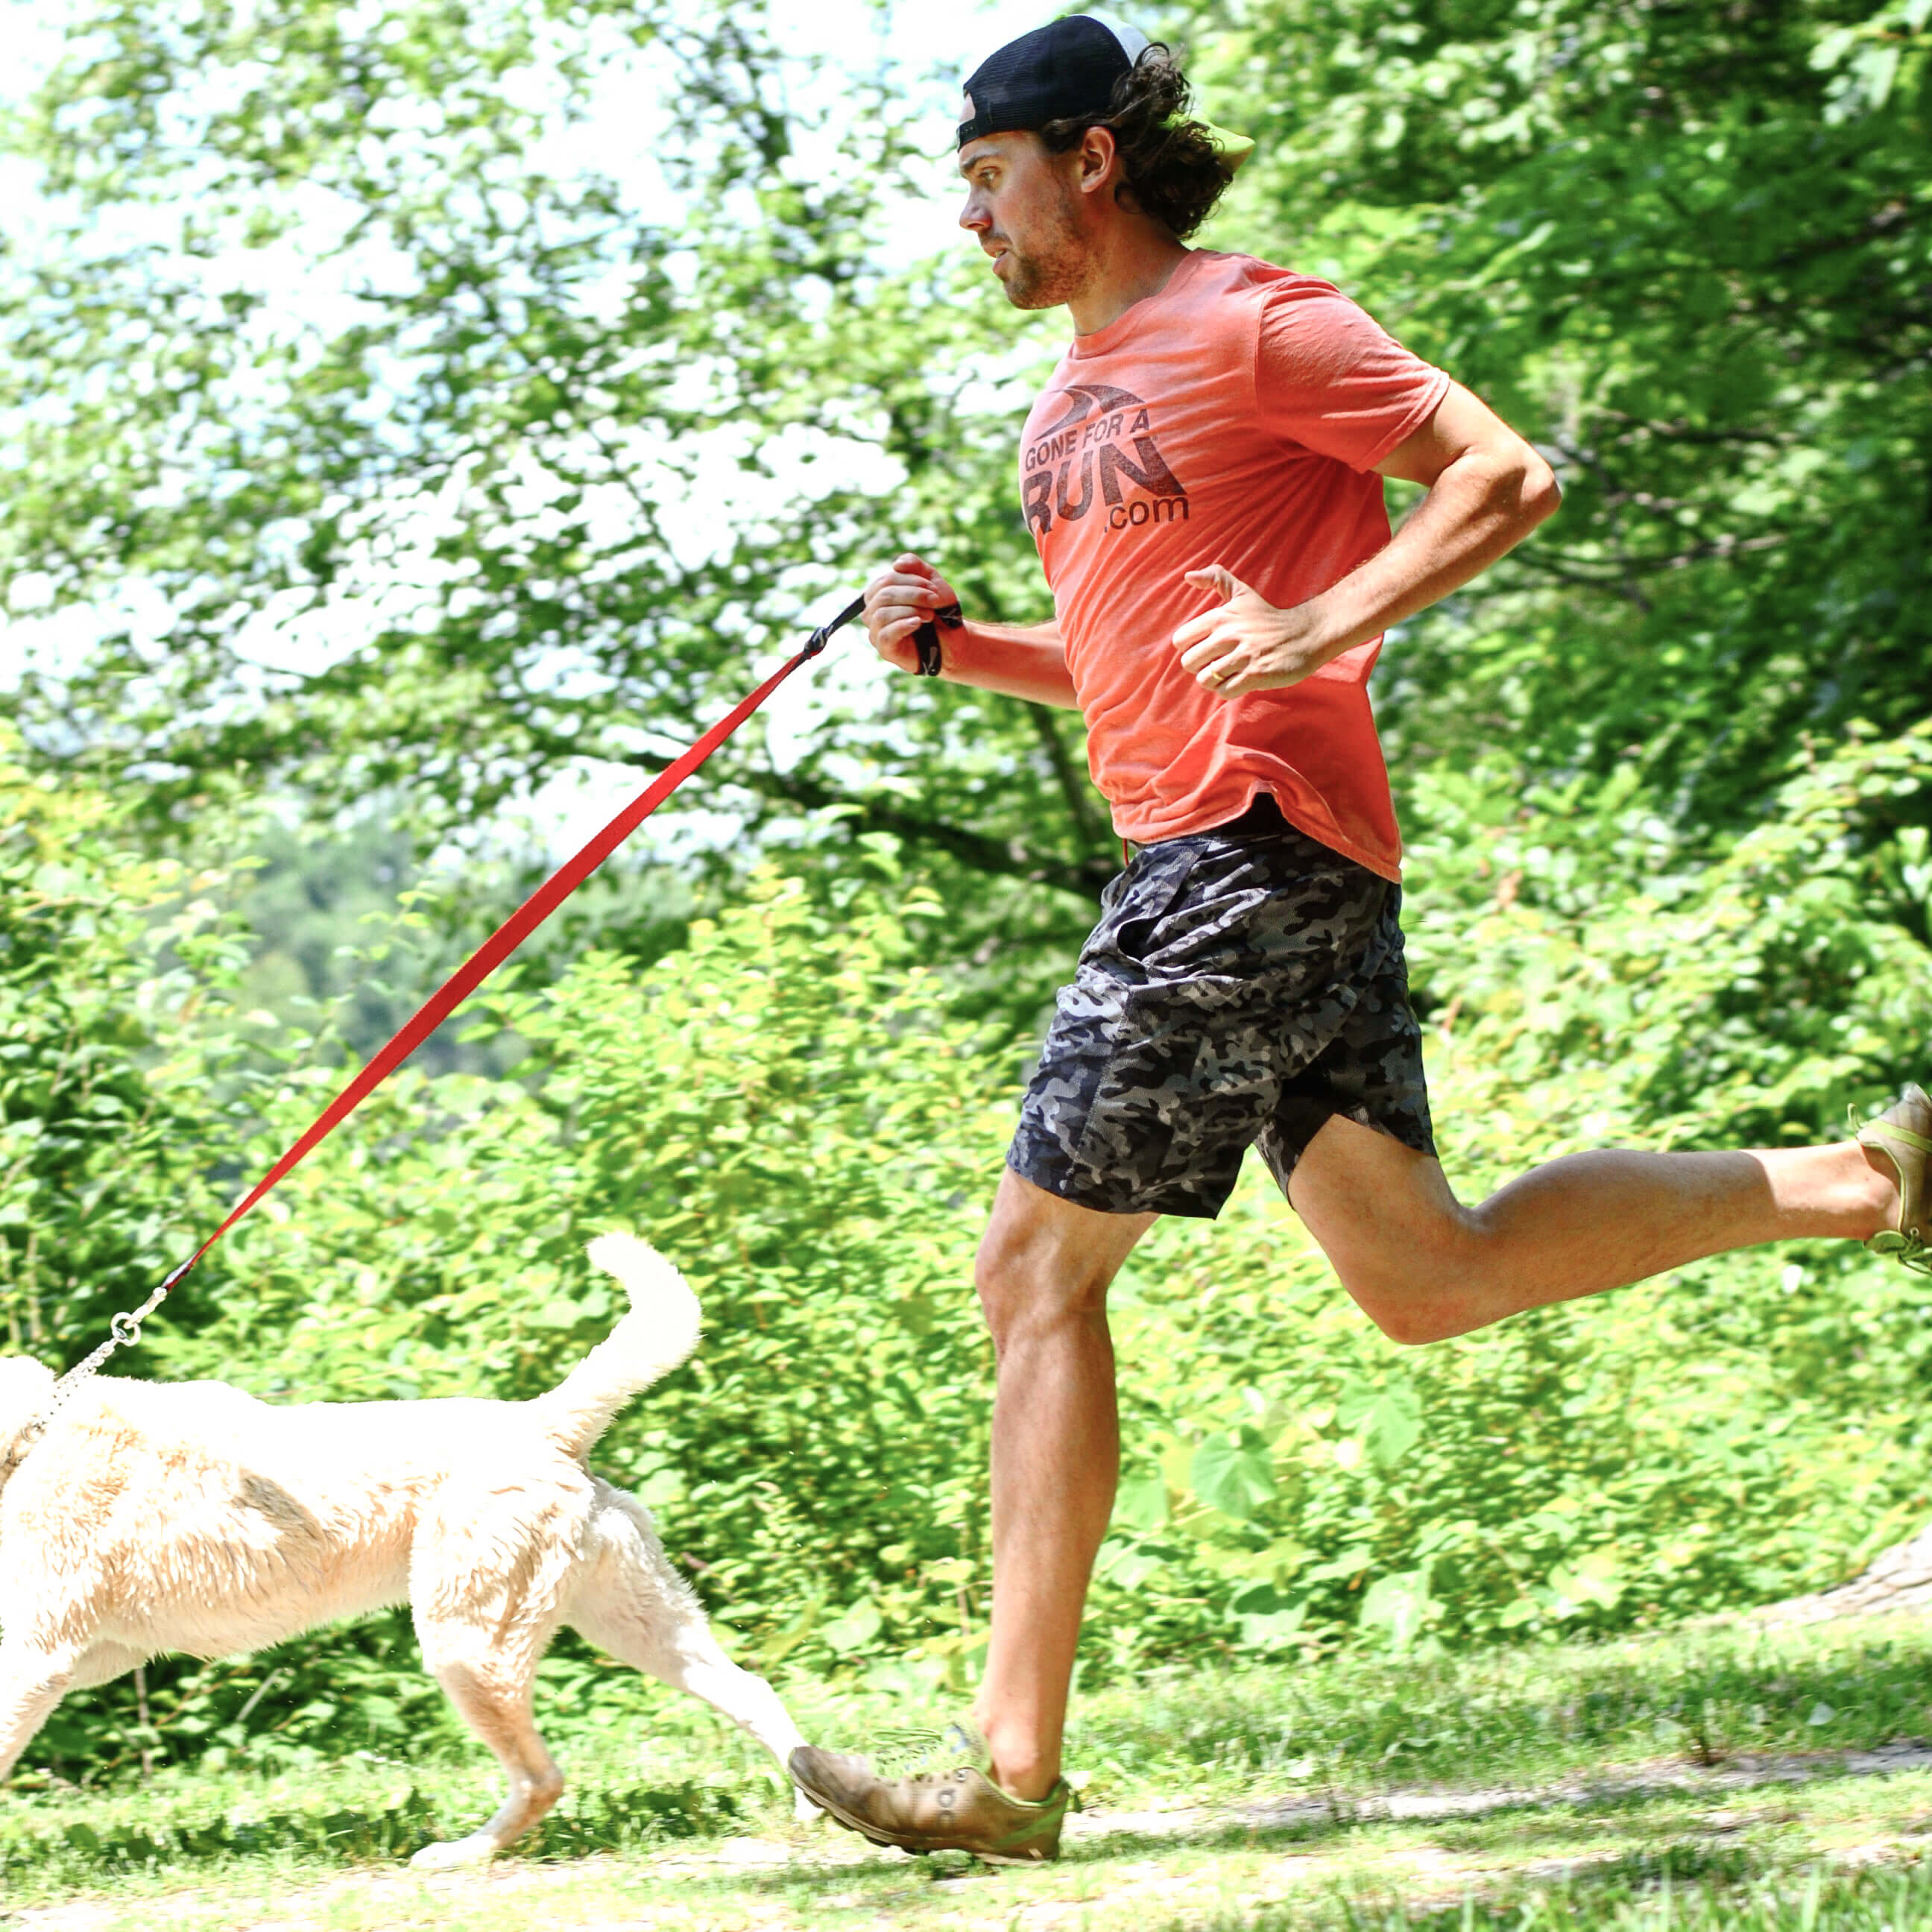 Guy running with his dog in the woods